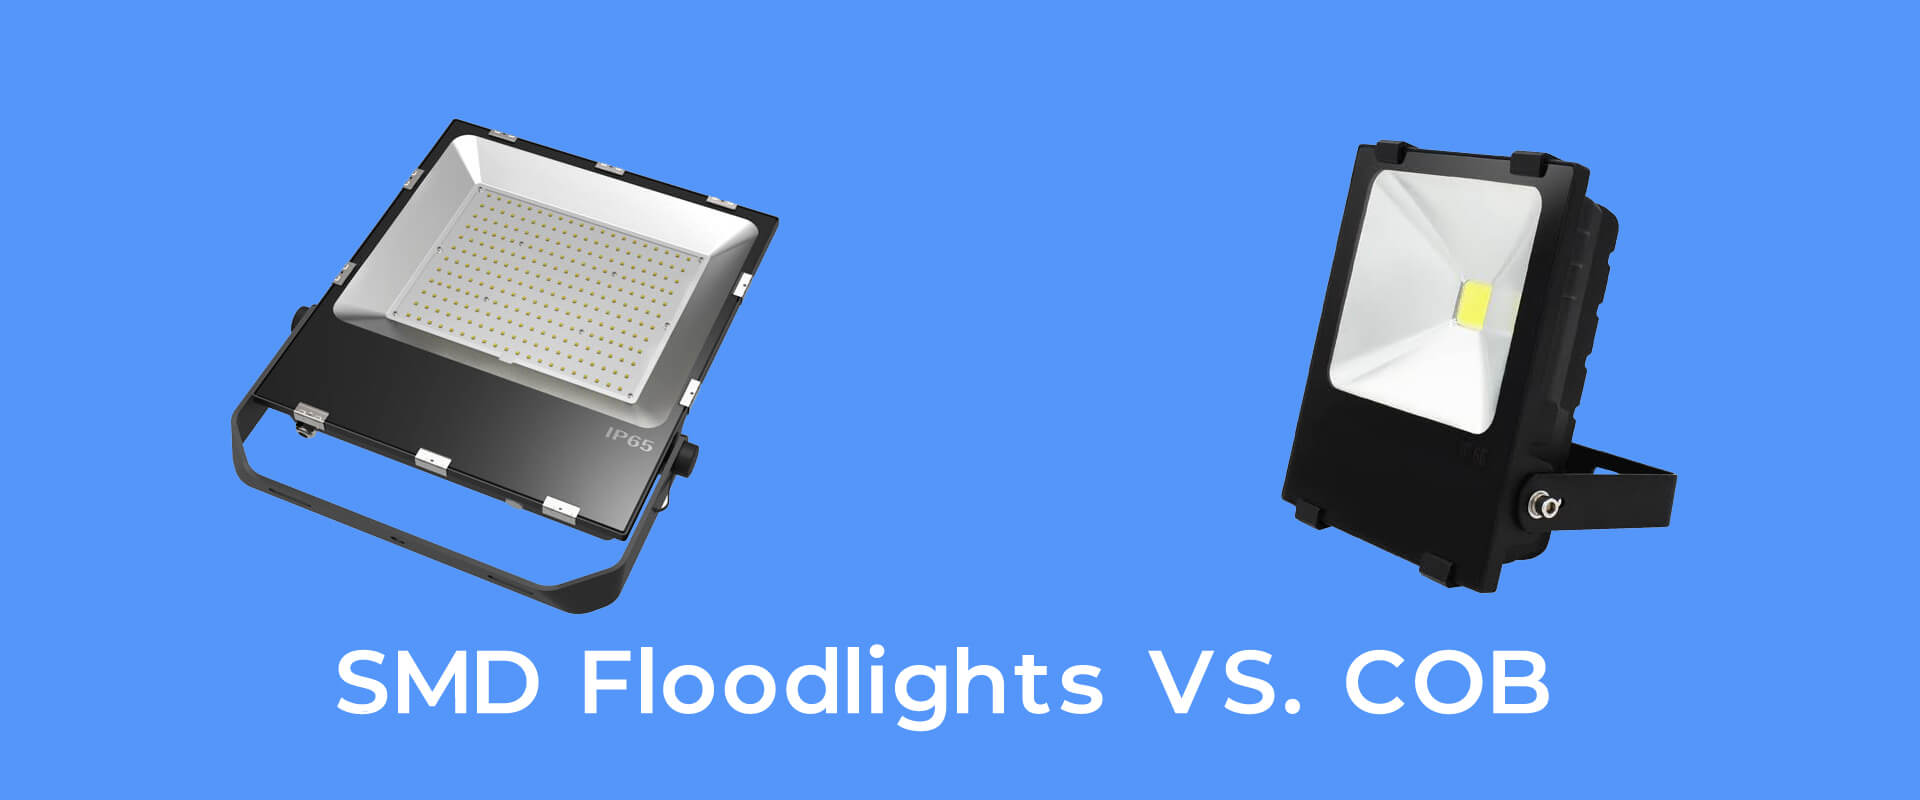 SMD Floodlights VS. COB